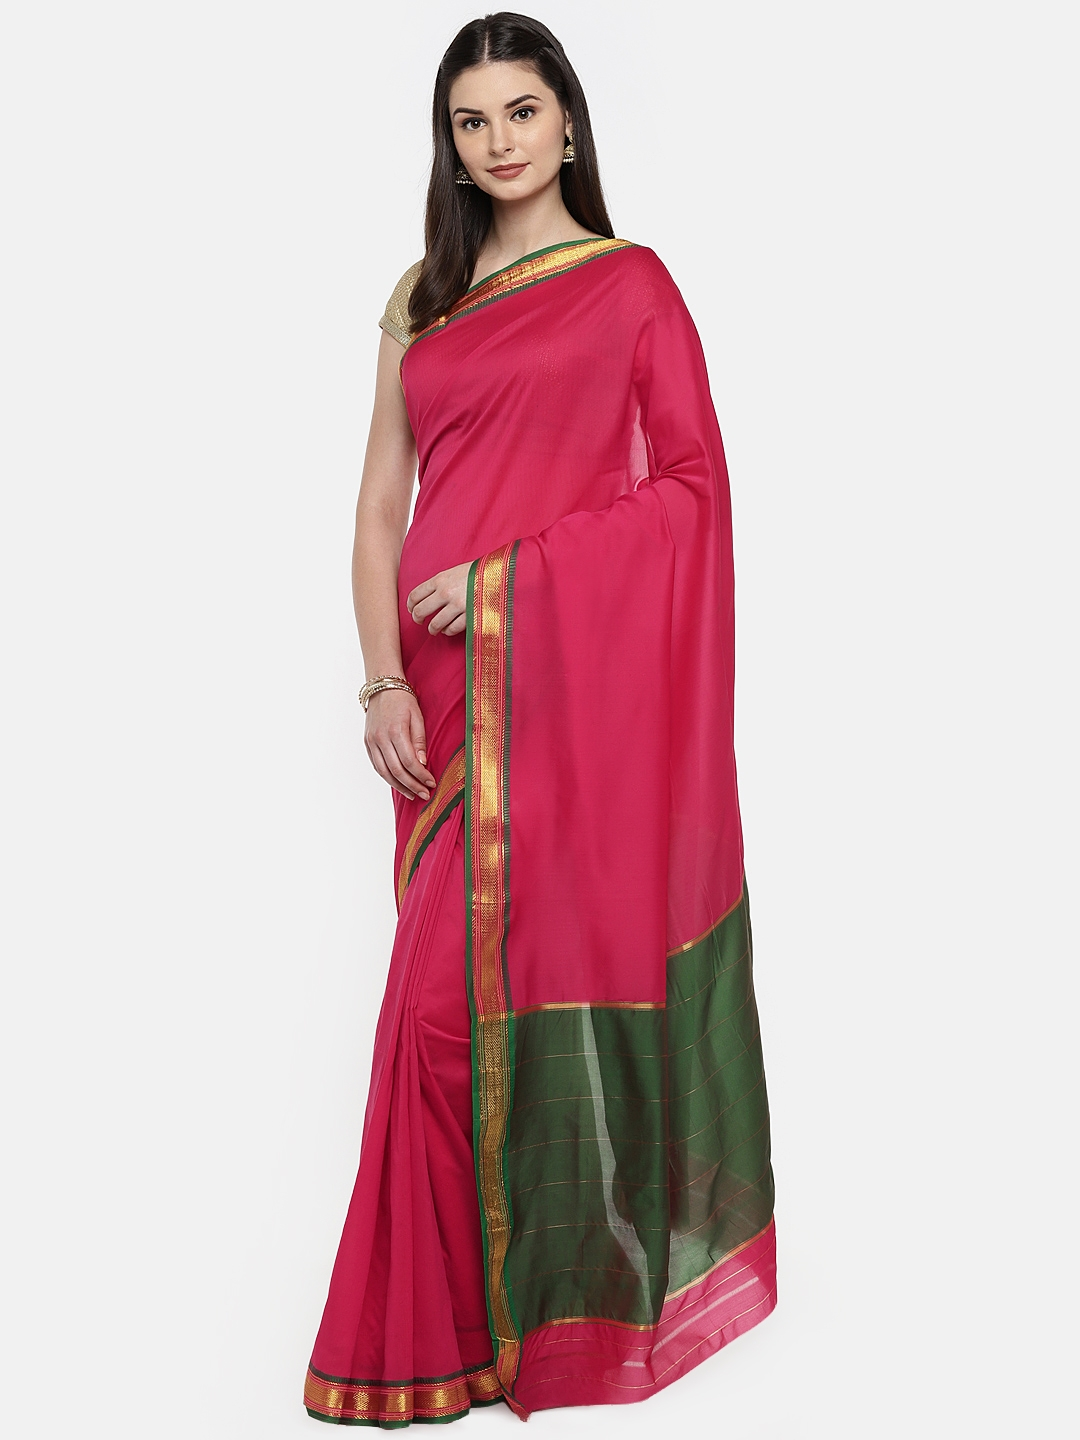 64edbd1ed Buy Ishin Pink   Green Poly Silk Woven Design Saree - Sarees for ...